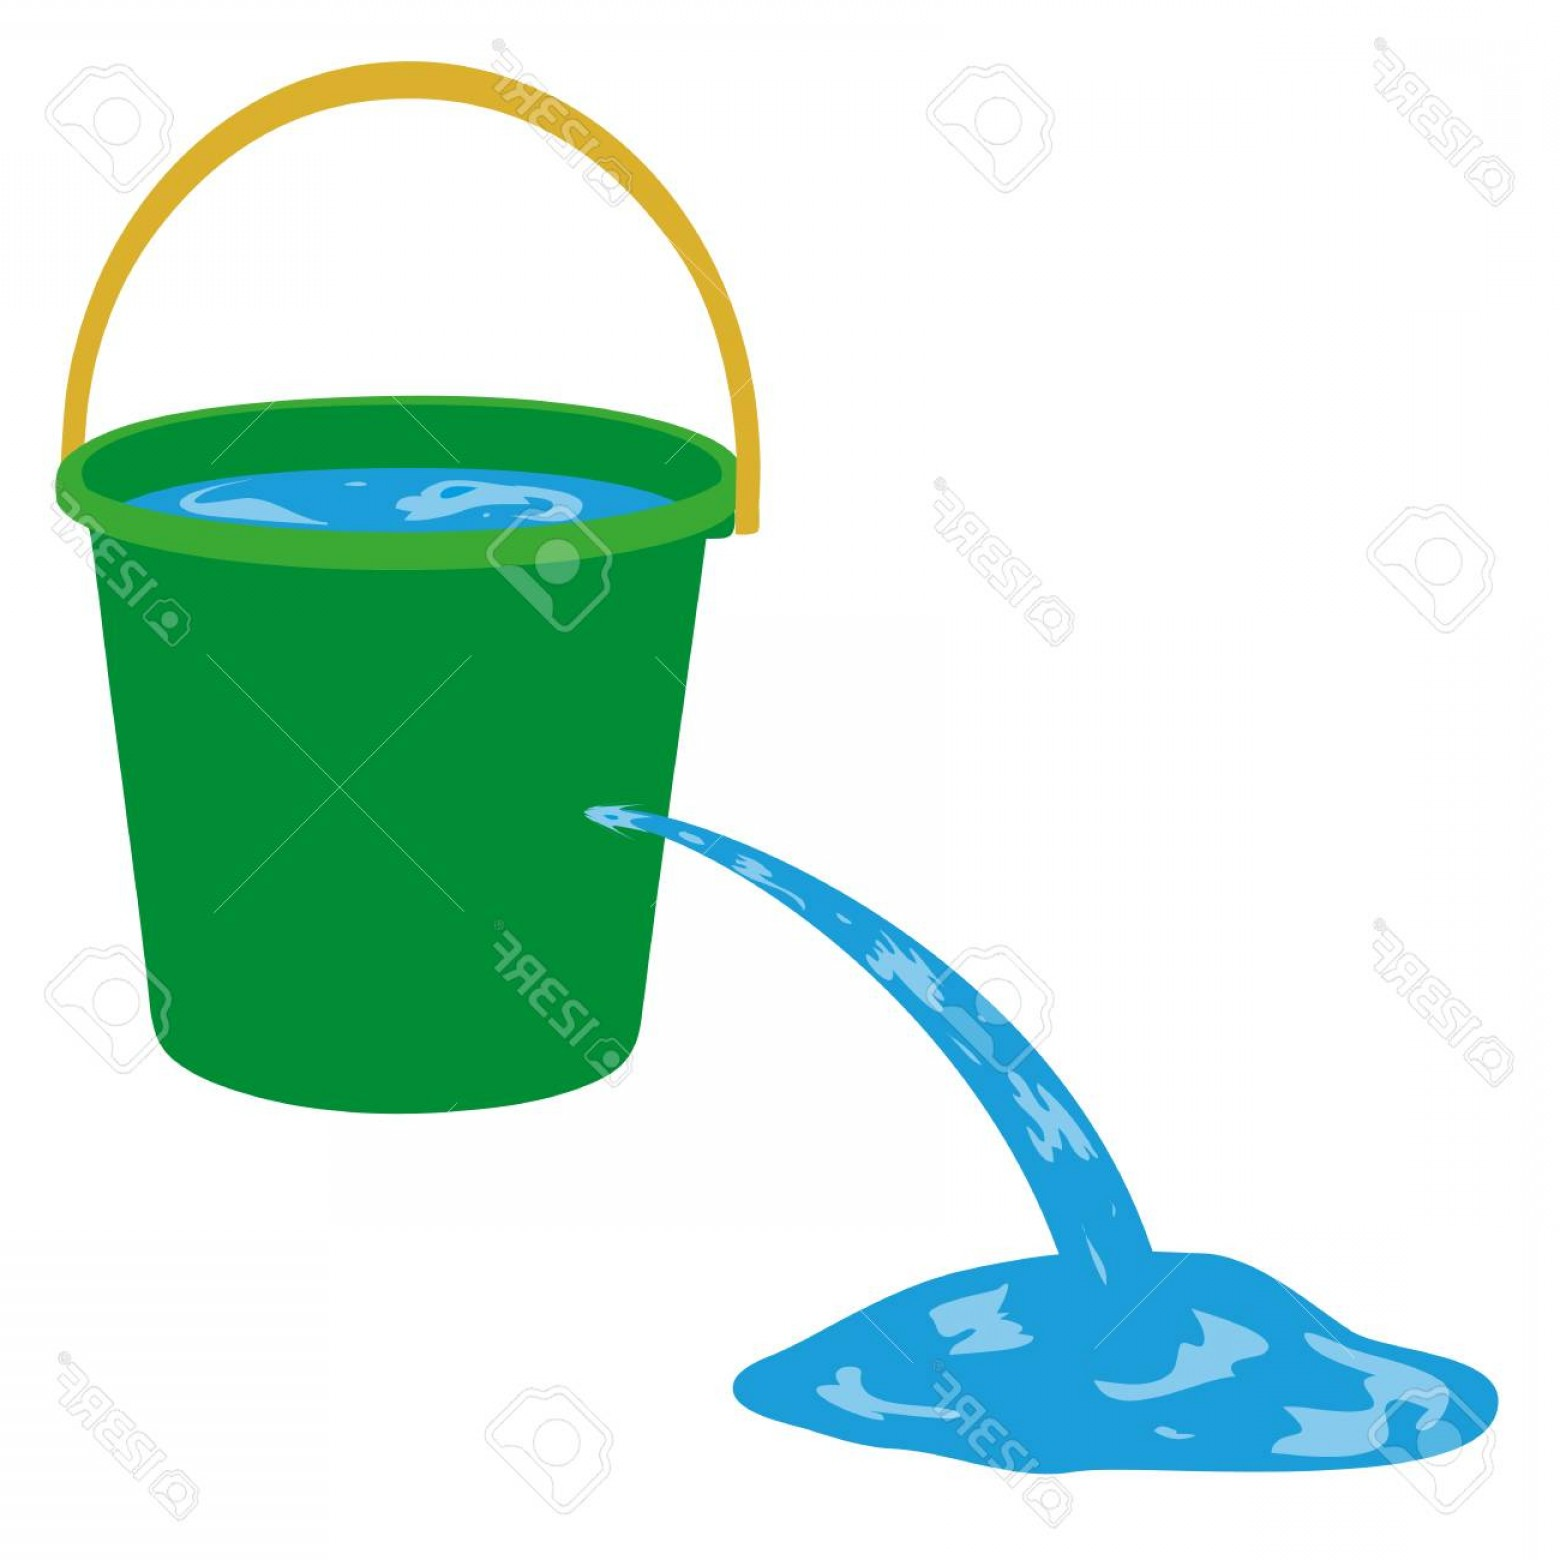 Water pouring out clipart banner royalty free stock Photostock Vector Water Is Poured Out Of A Hole In A Bucket ... banner royalty free stock